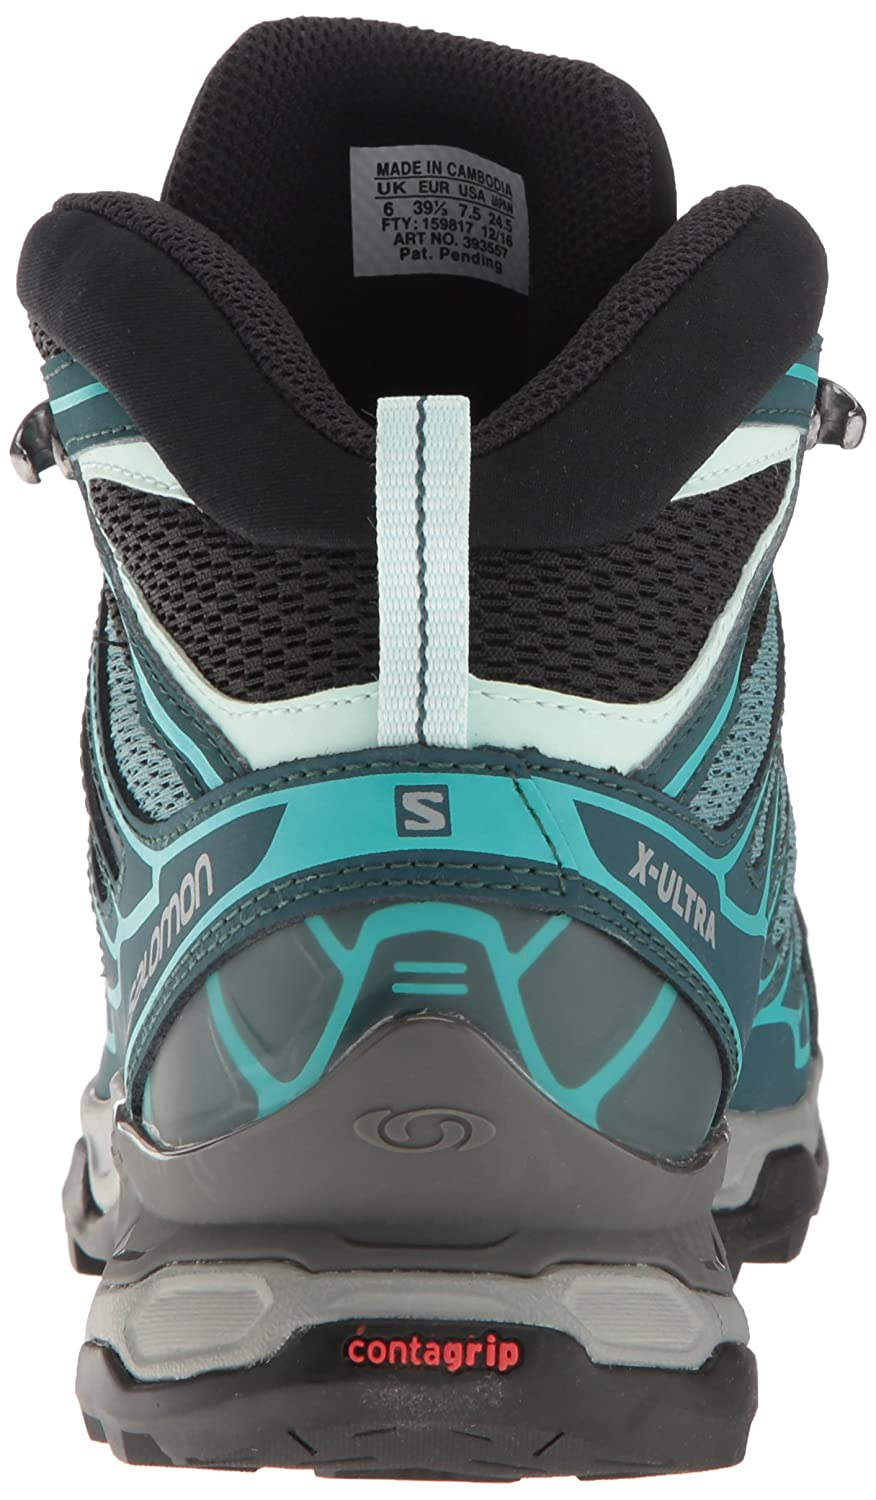 Salomon Women's X Ultra Mid Aero W Hiking US|North Boot B01HD2NGOO 7 B(M) US|North Hiking Atlantic/Reflecting Pond/Ceramic 739f4d